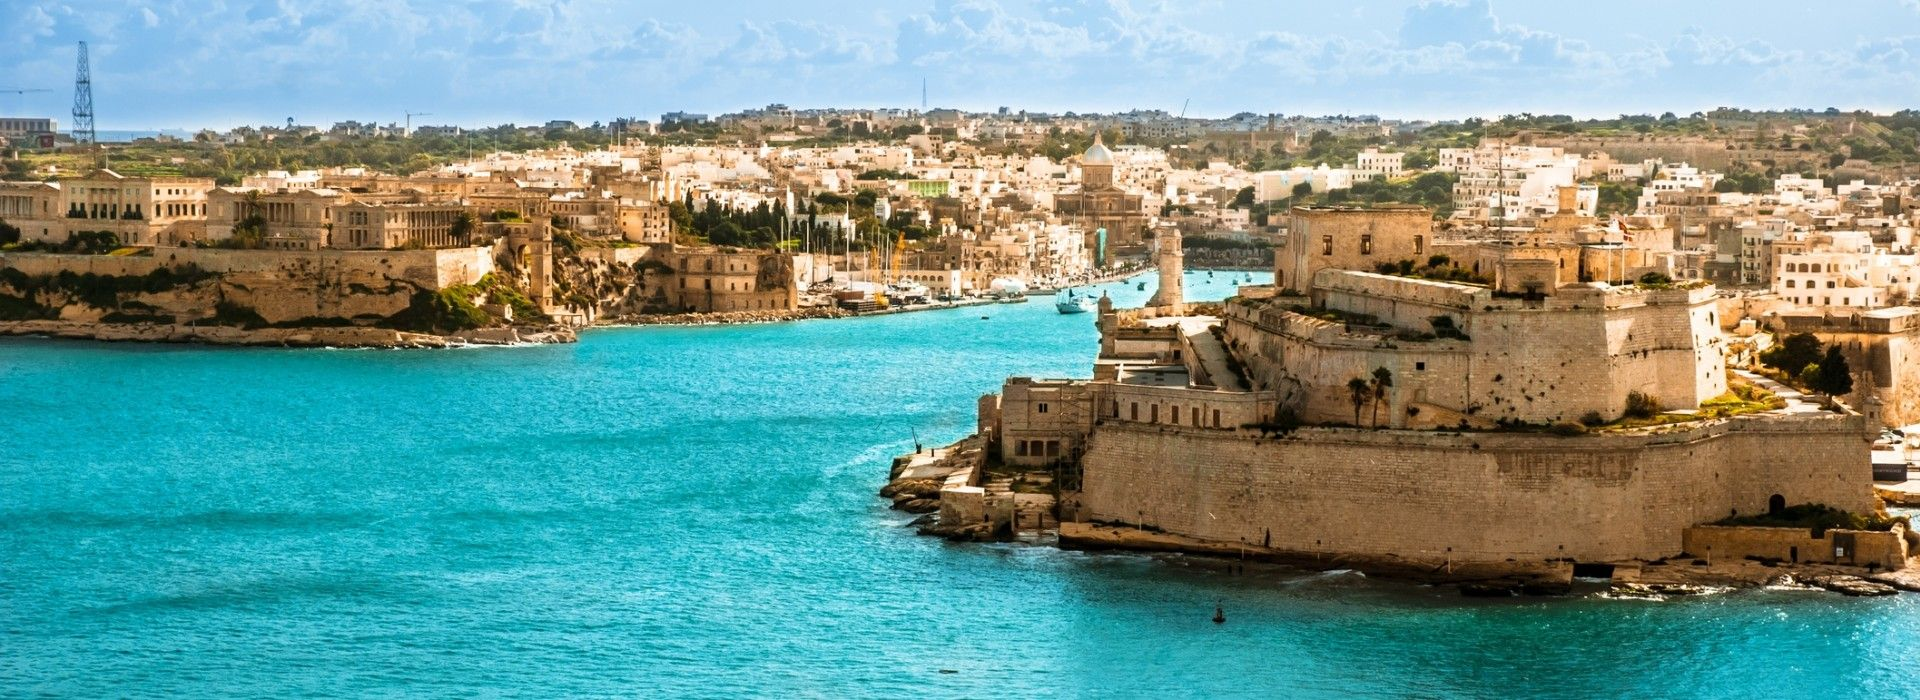 Malta Tours and Trips to Malta